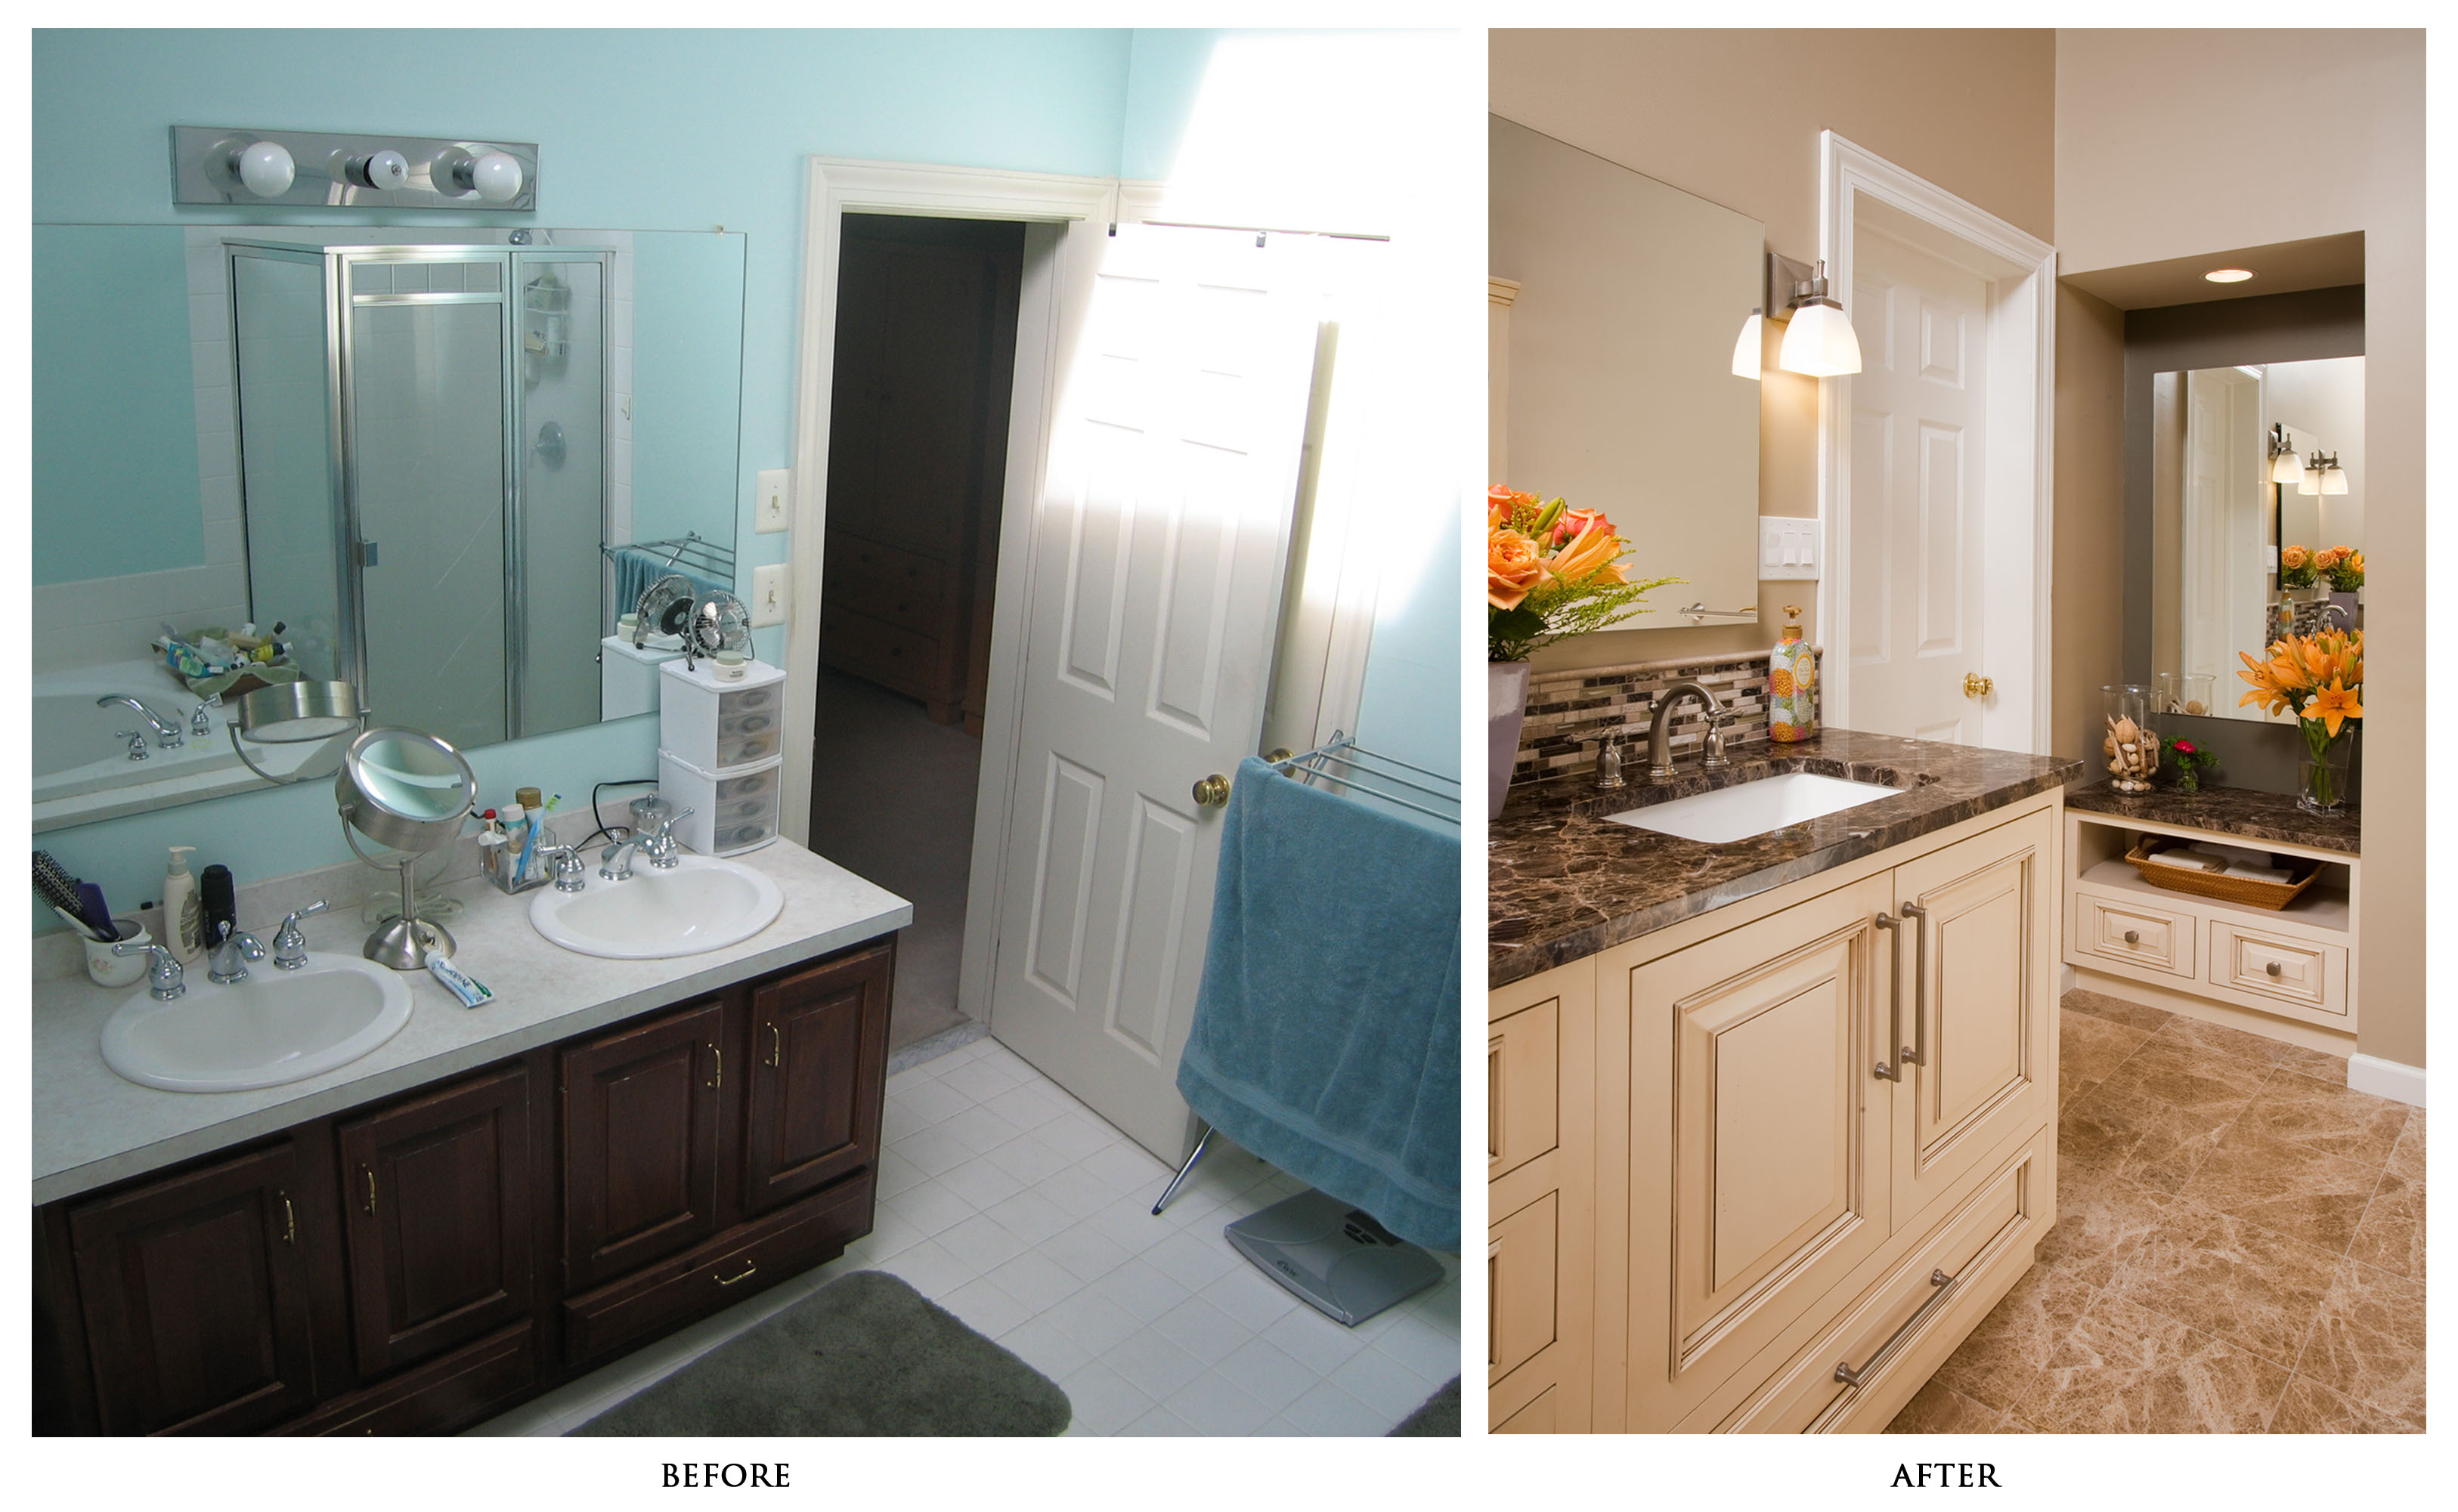 Before And After Diy Bathroom Renovation Ideas Marvelous Diy Bathroom  Remodel Photos Design Inspirations Diy Bathroom Remodel Project Plan Diy  Bathroom  ...